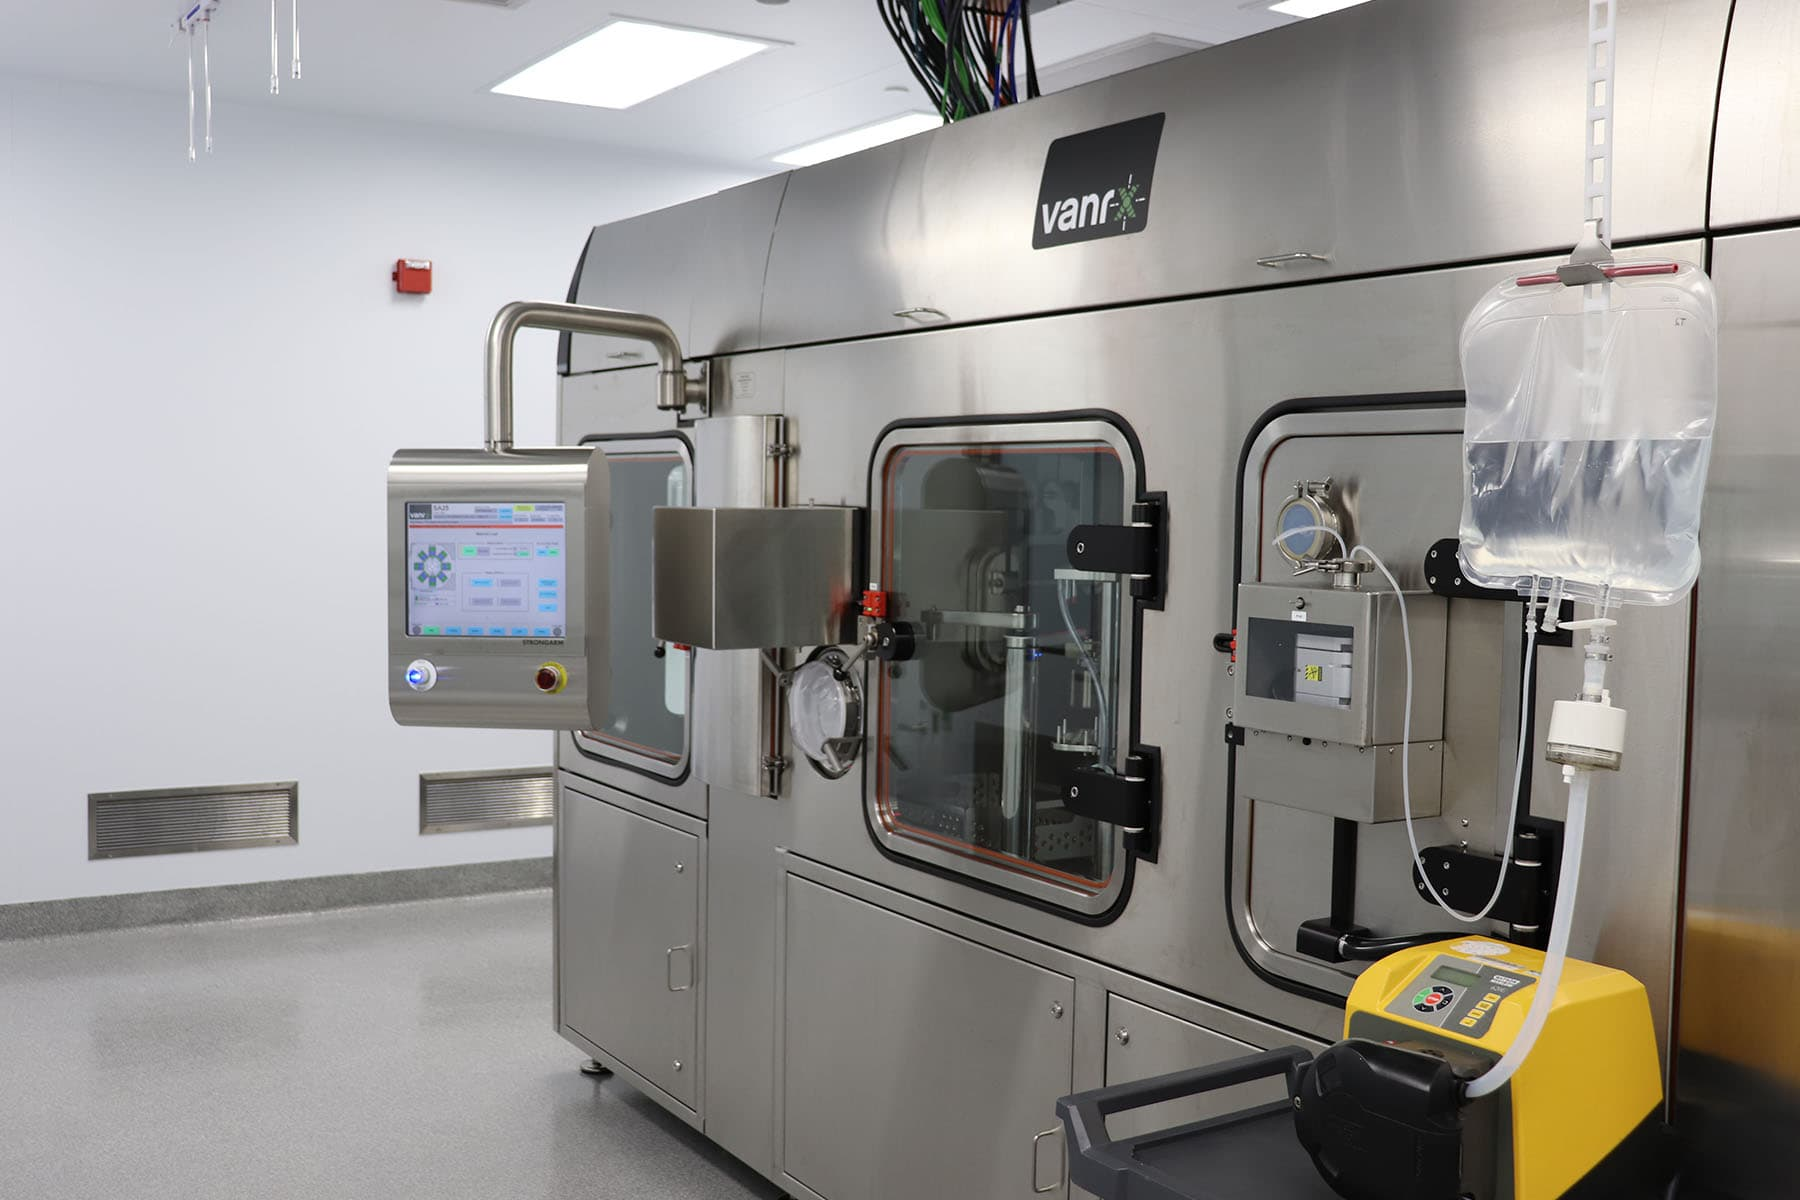 Emergent Biosolutions chose to install the SA25 in their Winnipeg site for superior product quality, sterility assurance and flexibility.